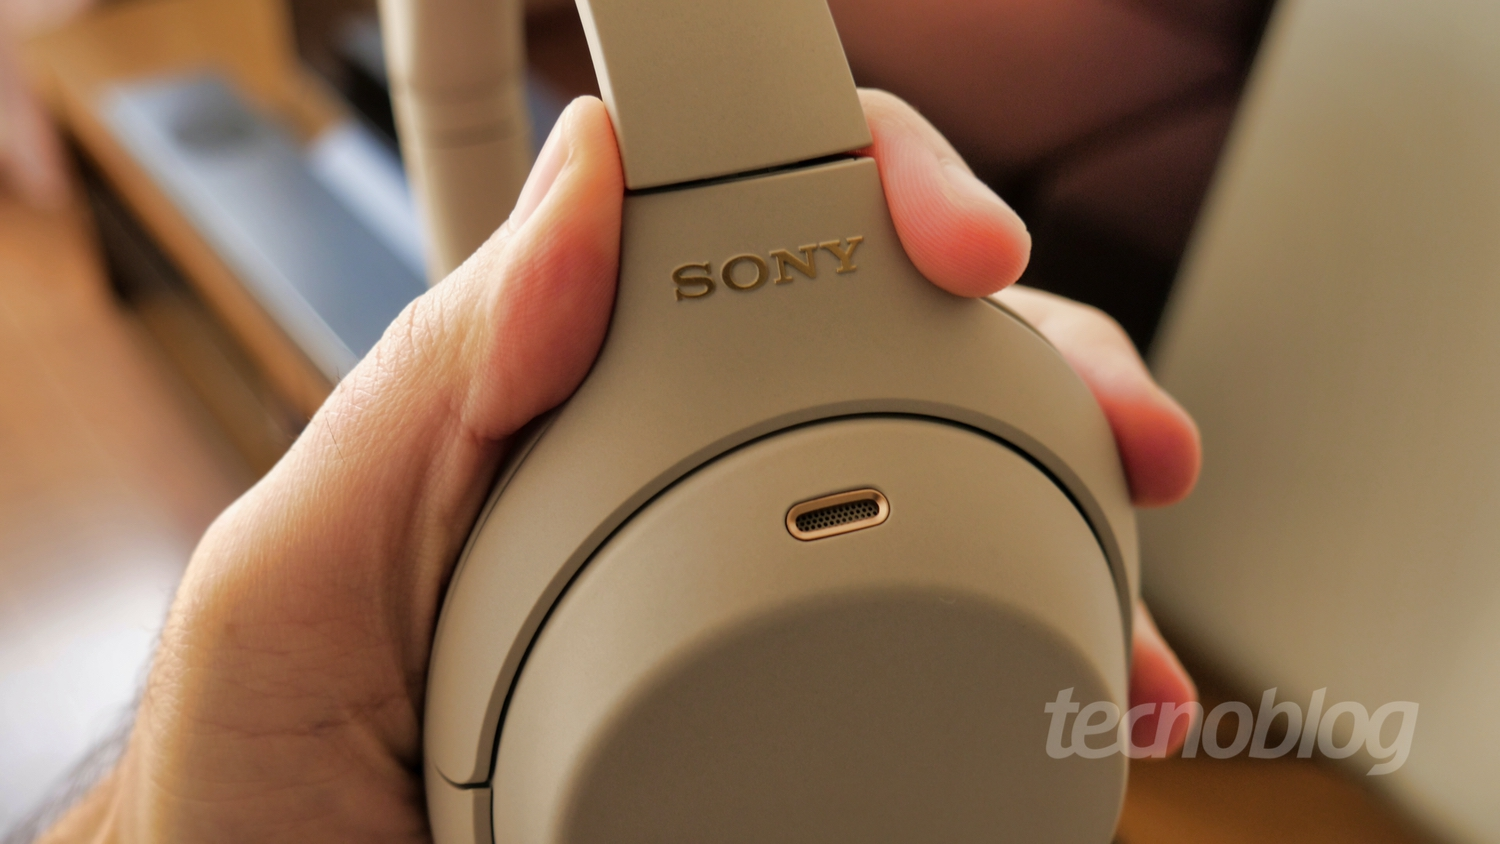 Fone Sony WH-1000XM4 - Review